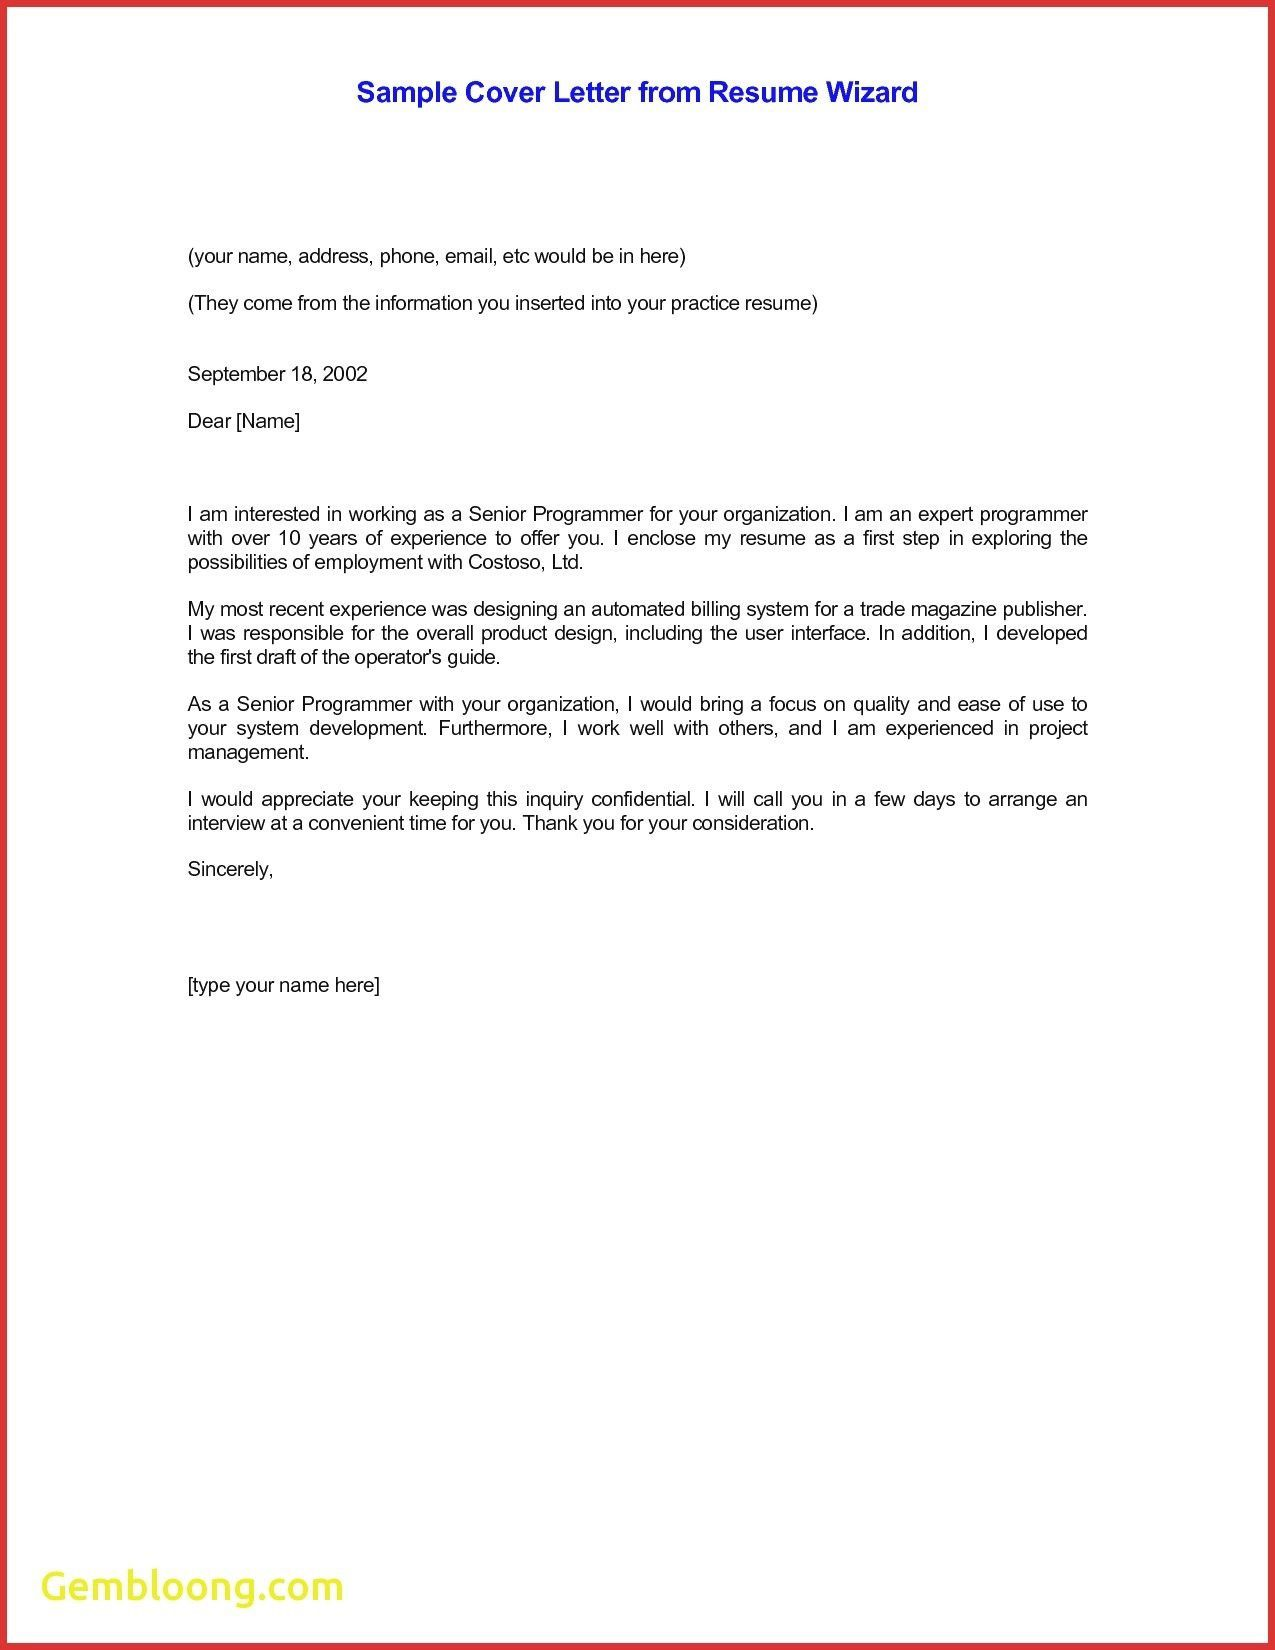 005 Surprising Email Cover Letter Example For Resume Picture  Sample Through AttachedFull